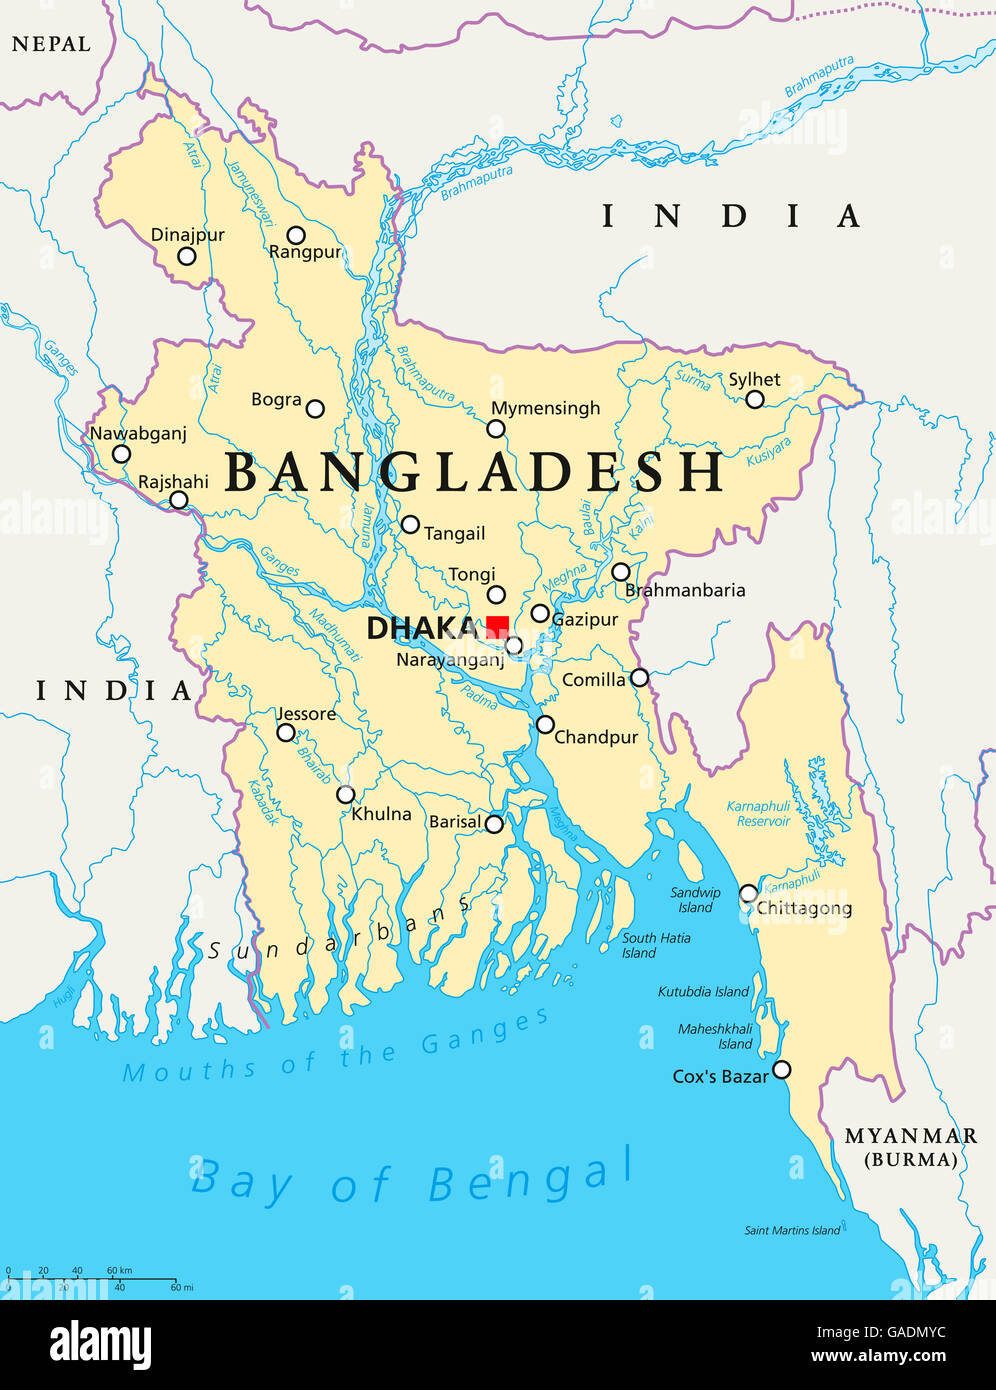 India Bangladesh Map High Resolution Stock Photography And Images Alamy